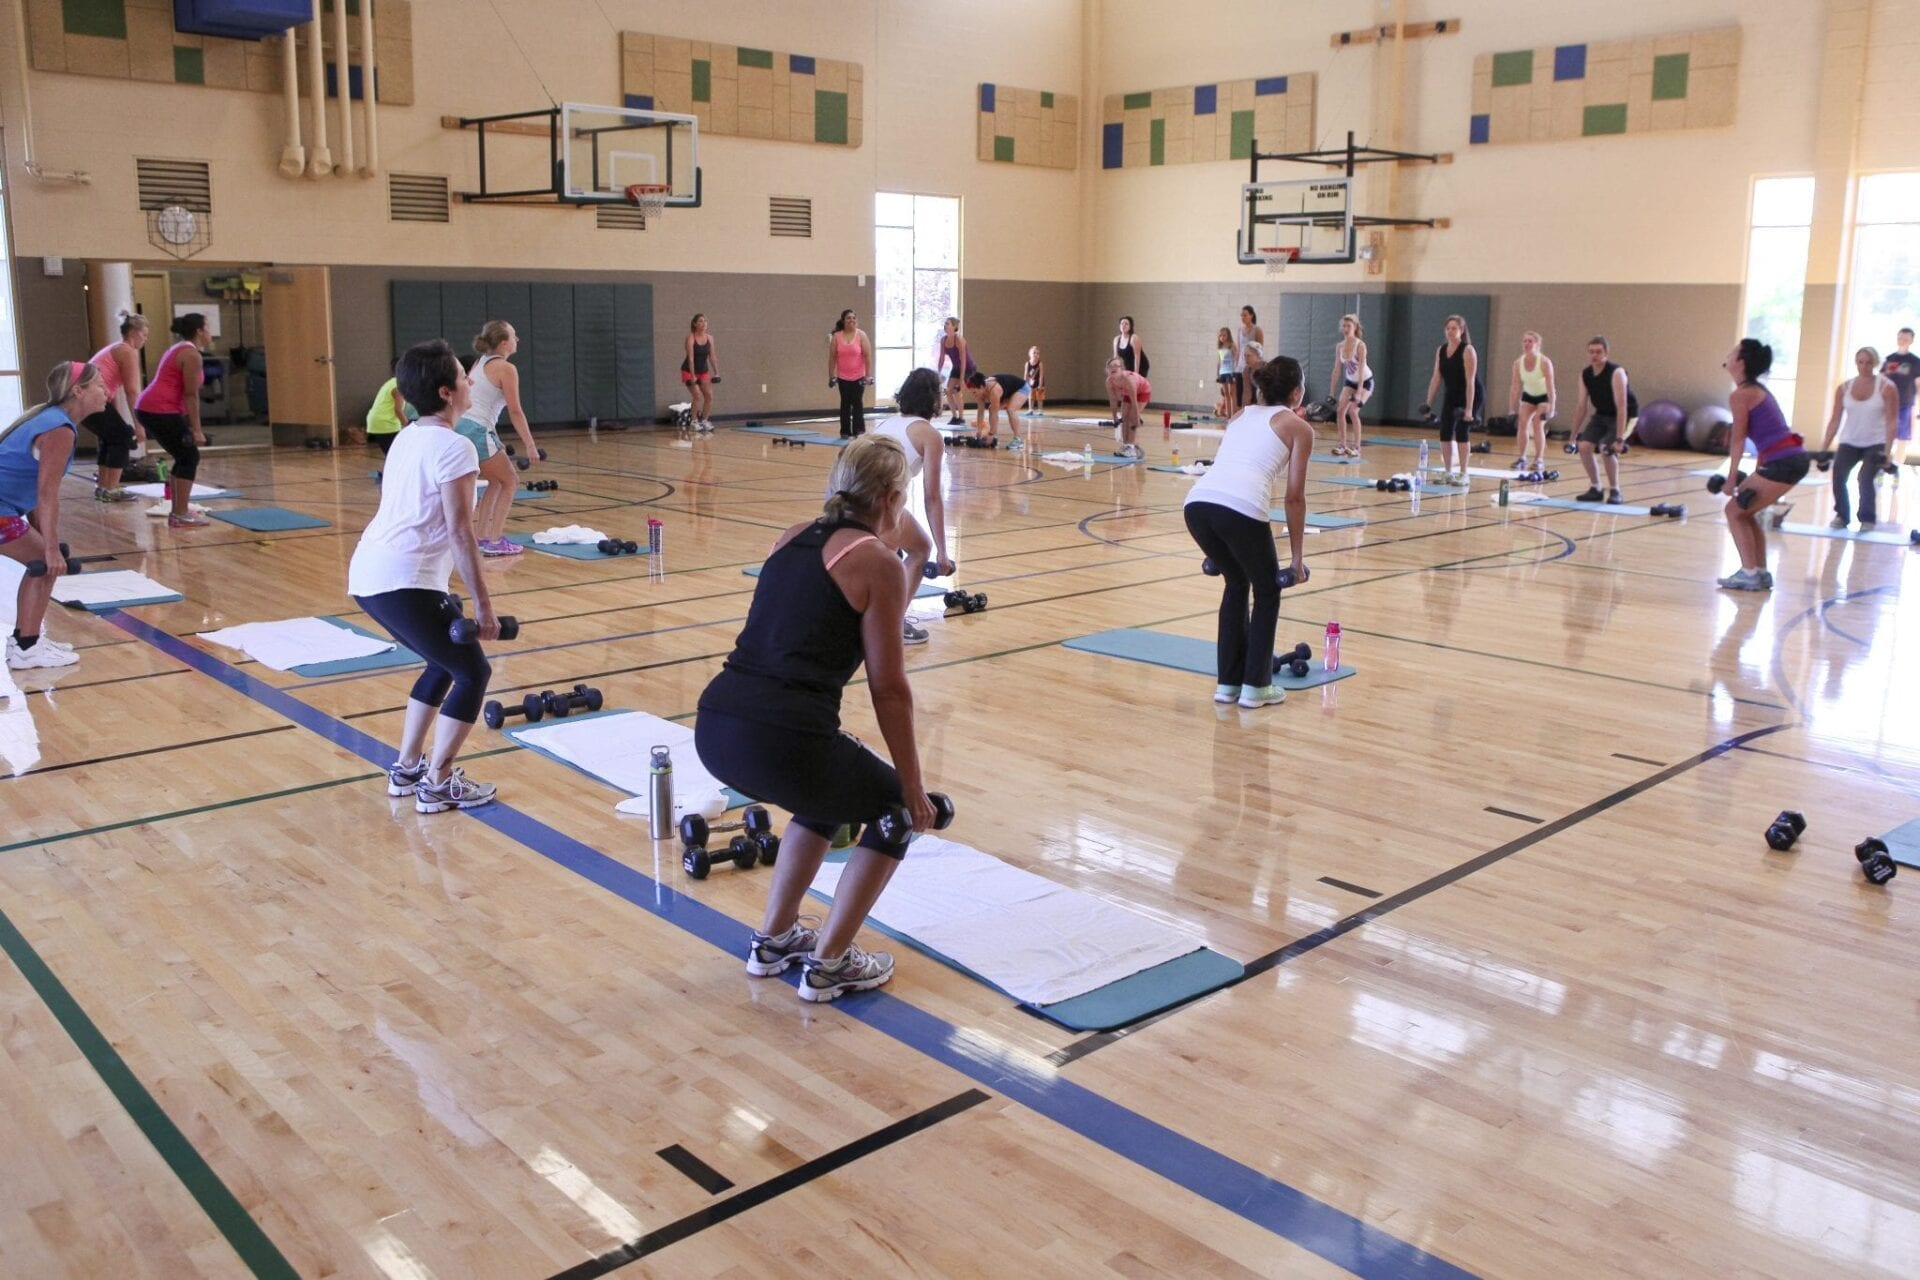 North Gym Fitness Class